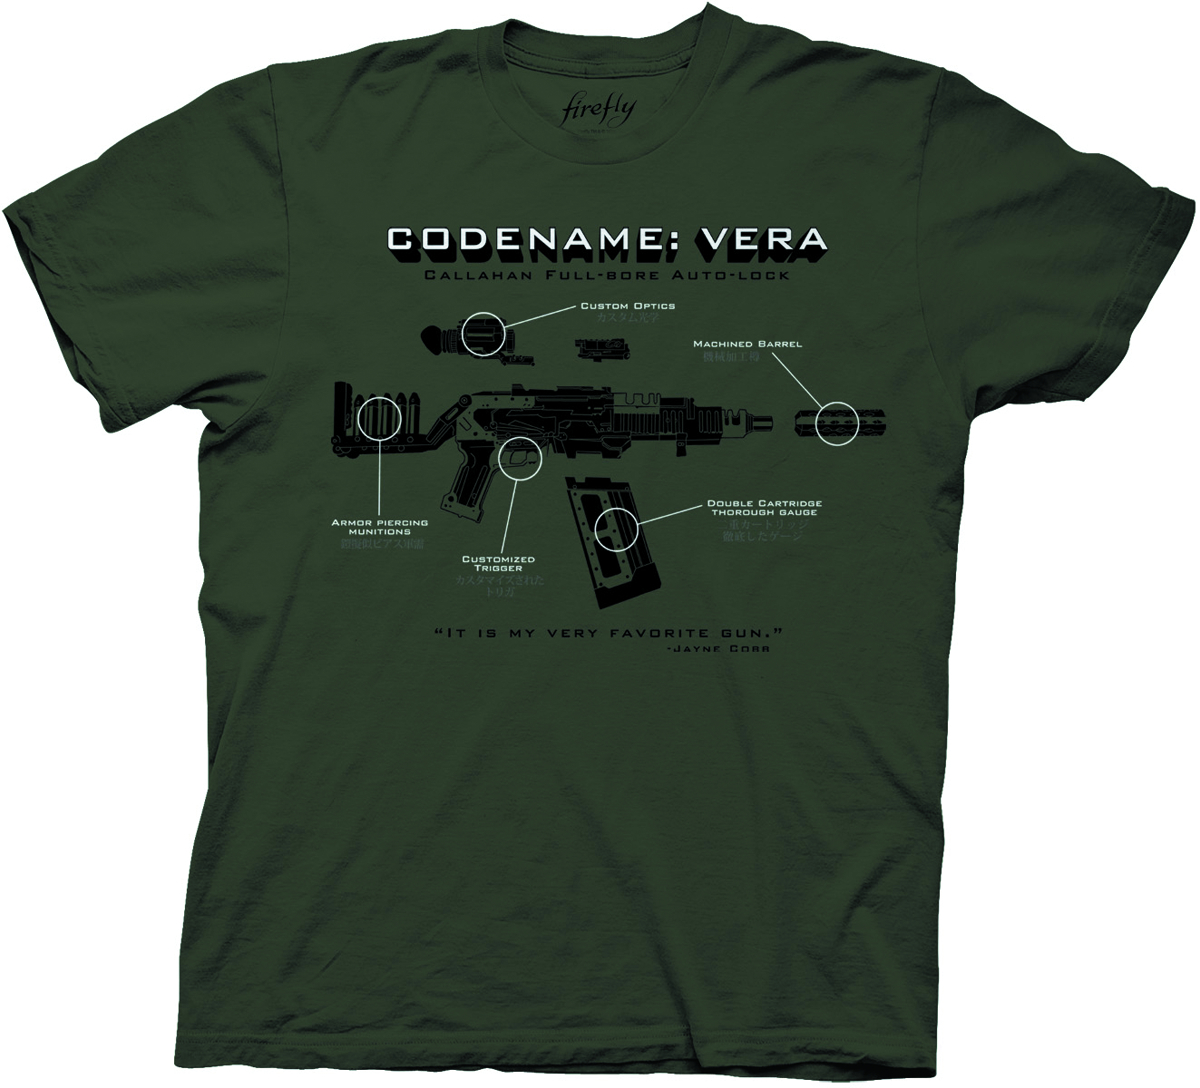 FIREFLY CODENAME VERA PX ARMY GREEN T/S XL